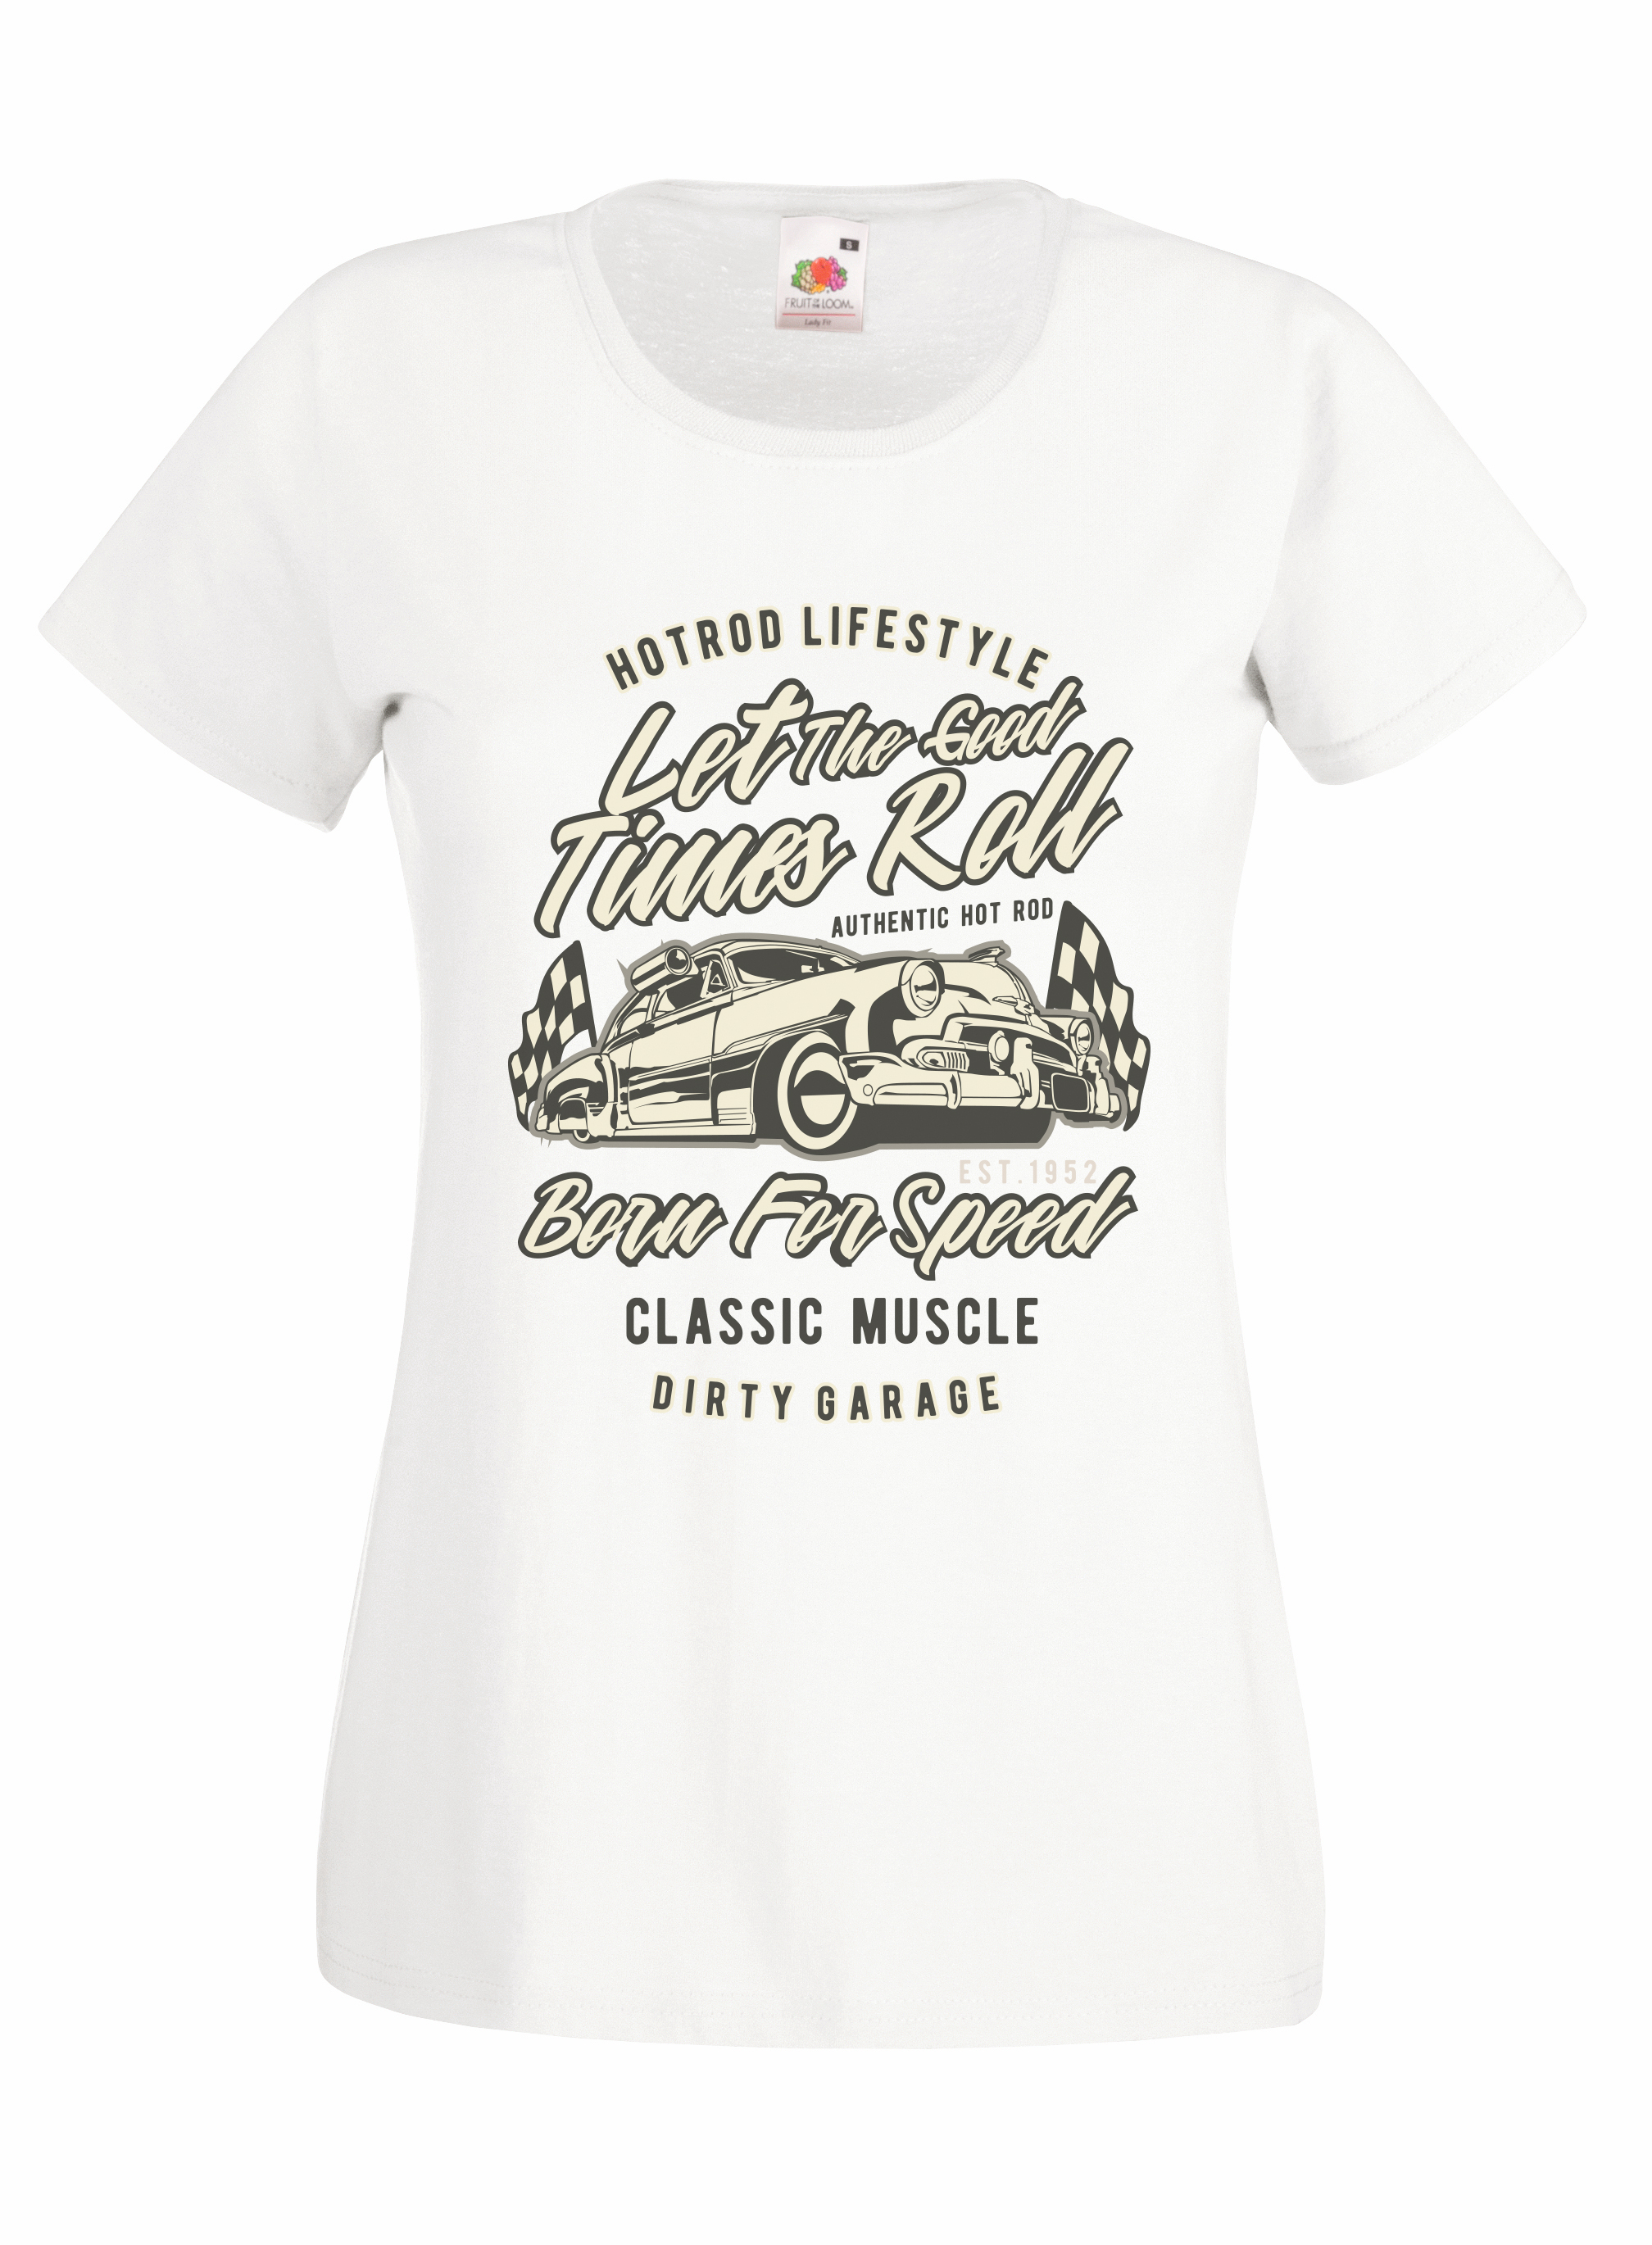 Let The Good Times Roll design for t-shirt, hoodie & sweatshirt